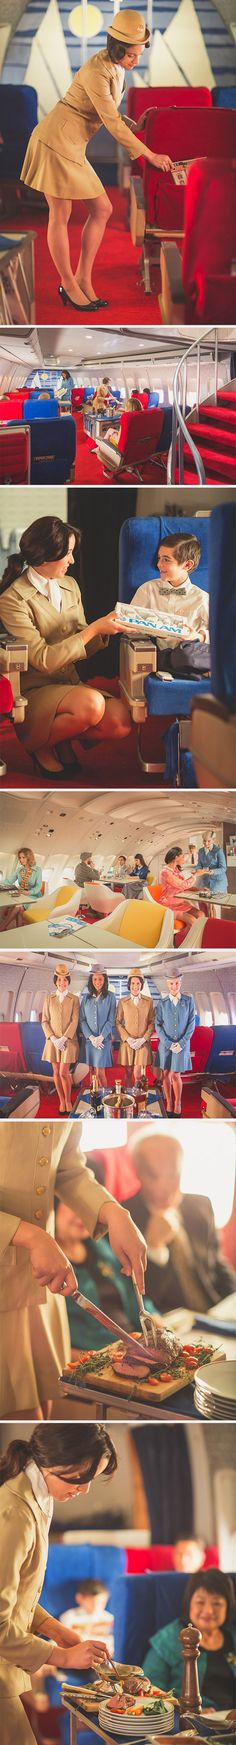 Pan Am In The 1960s